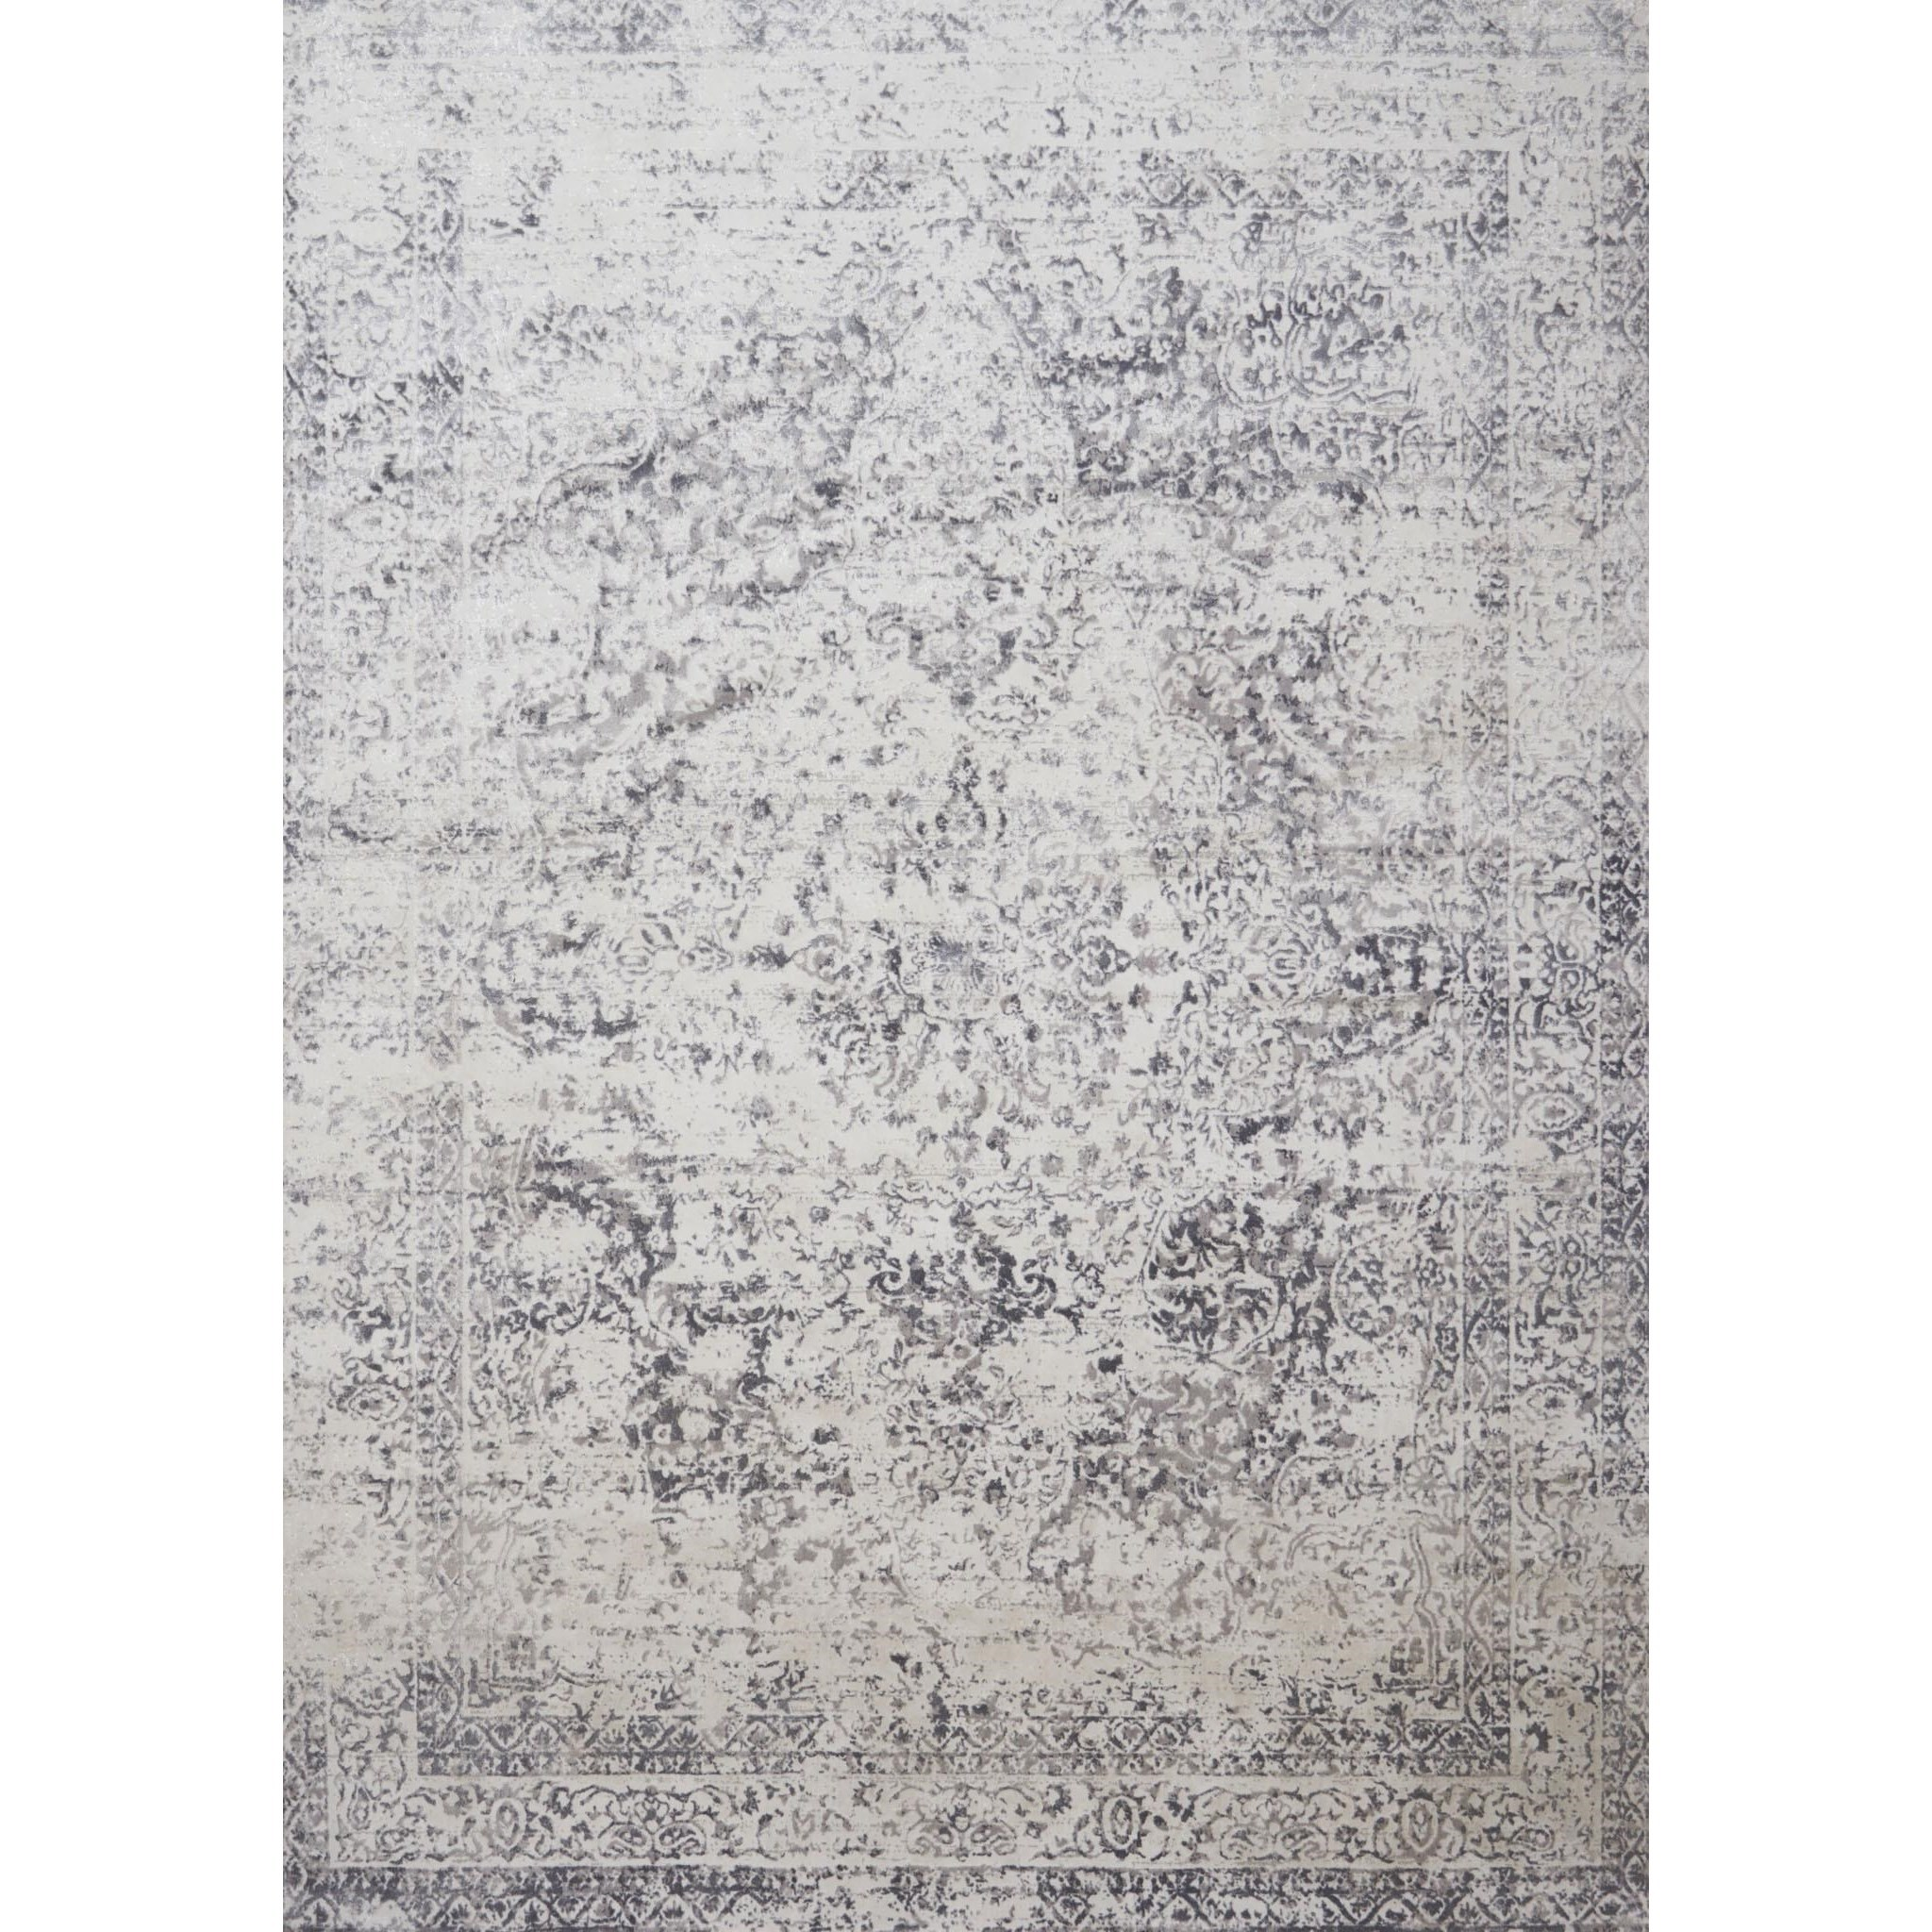 "Patina 5'-3"" X 5'-3"" Round Rug by Loloi Rugs at Sprintz Furniture"